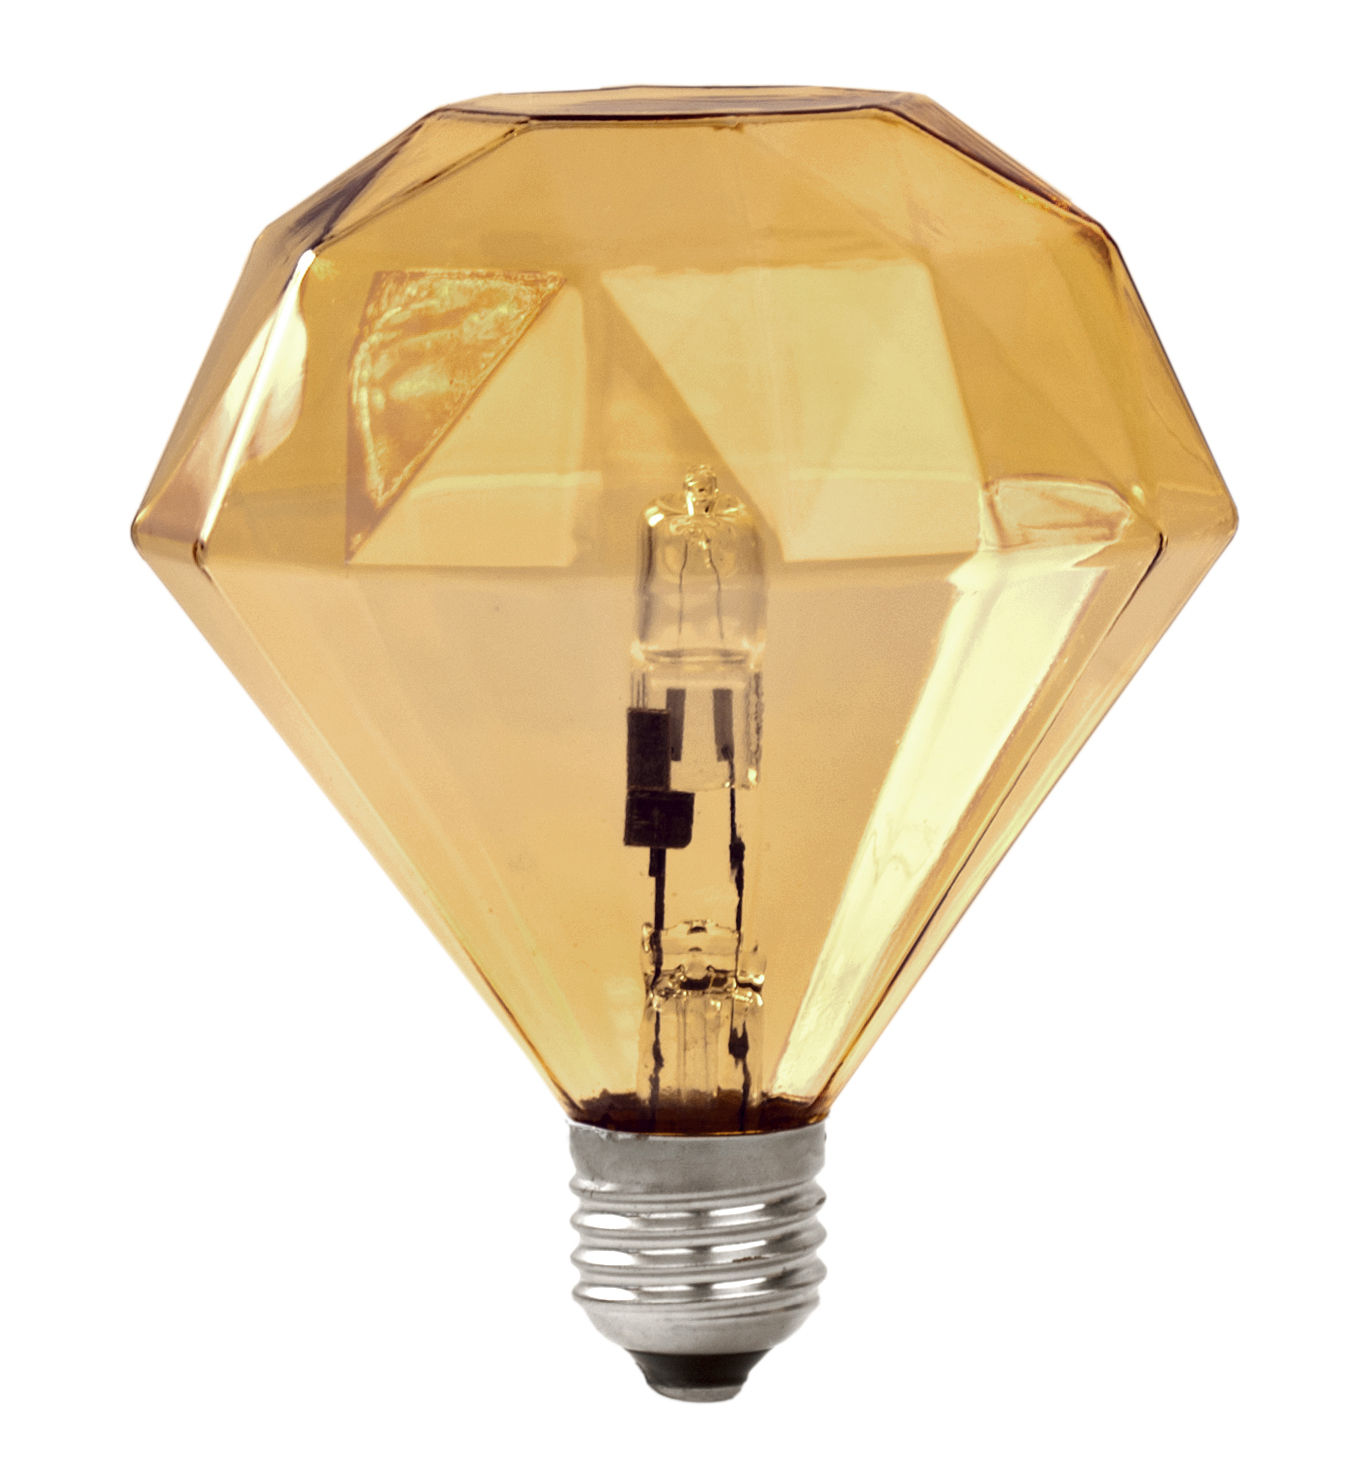 Halogen Glühbirne Diamond Light Halogen Glühbirne E27 E27 Halogenlampe Frama